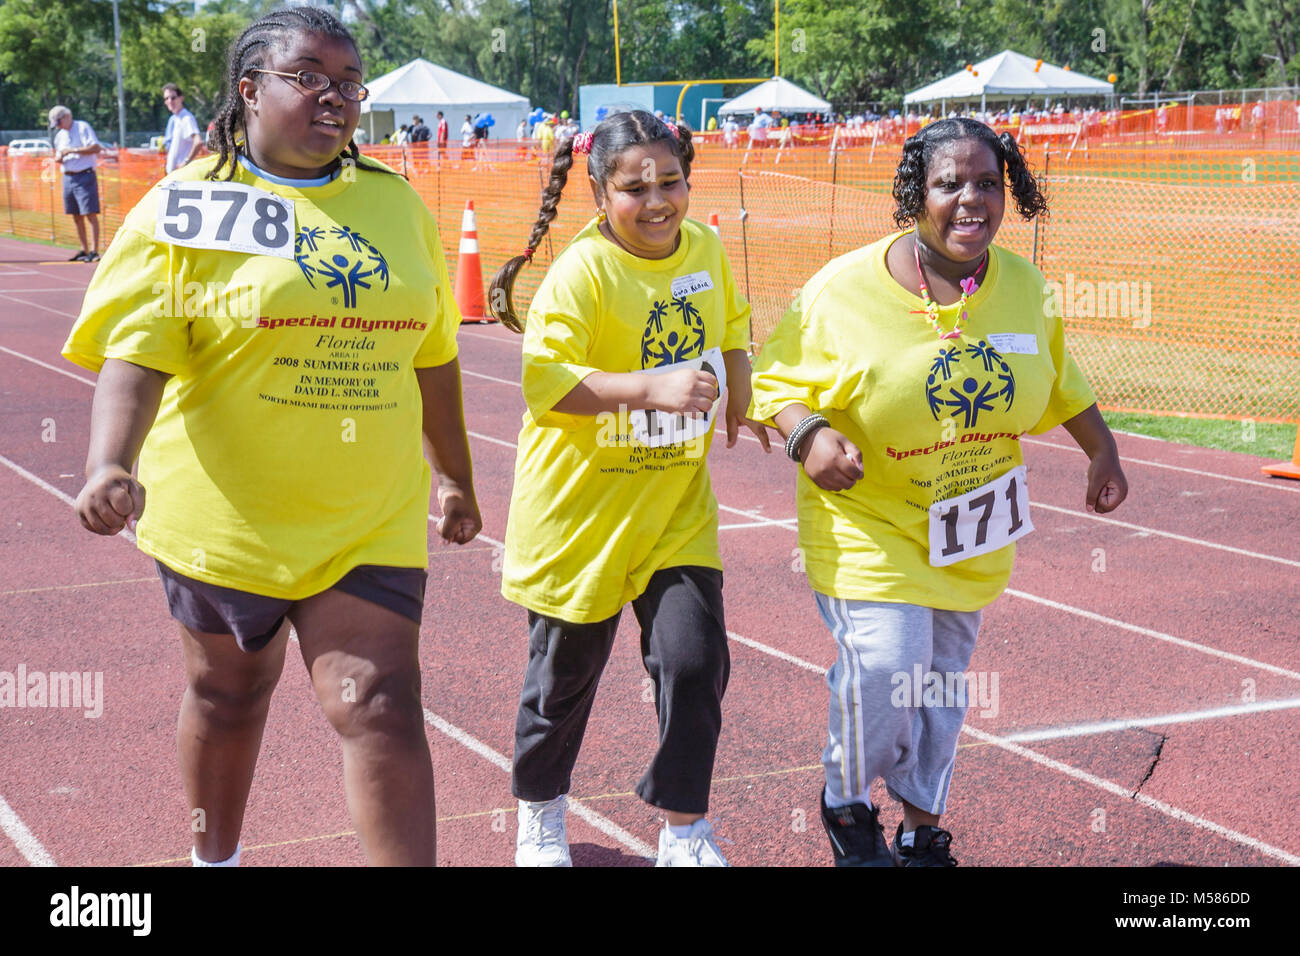 Special Olympics mentally physically disabled competition volunteers  student sport Black teen girls race track effort